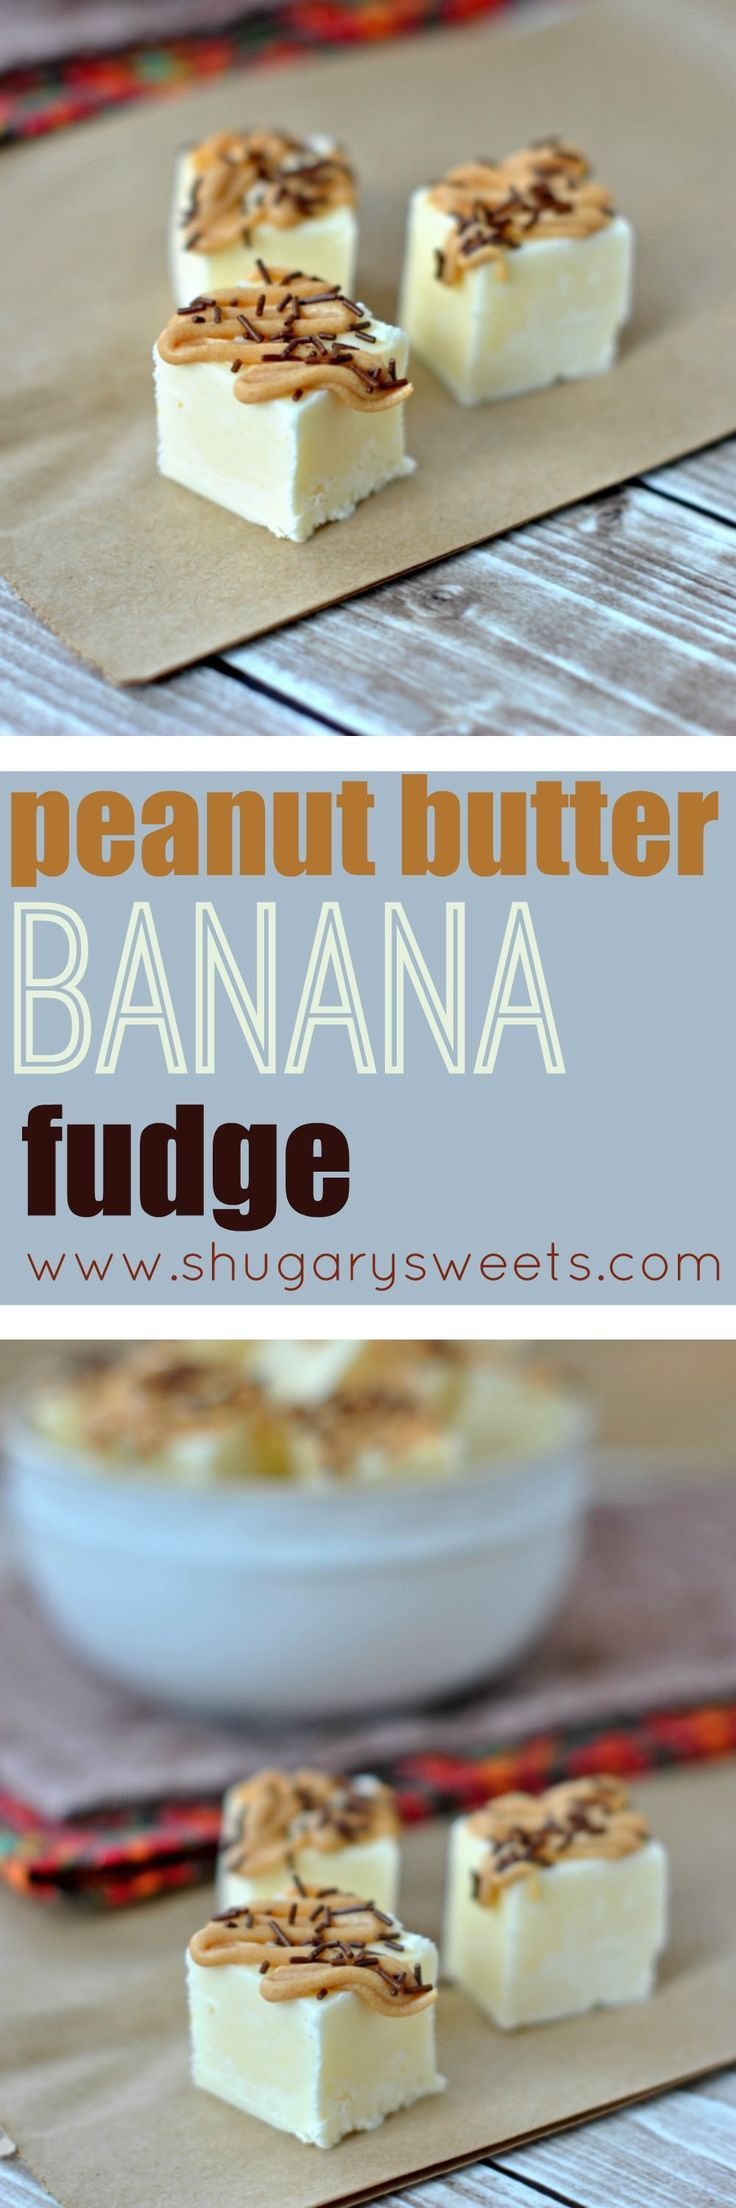 No Bake: Peanut Butter Banana Fudge - Shugary Sweets